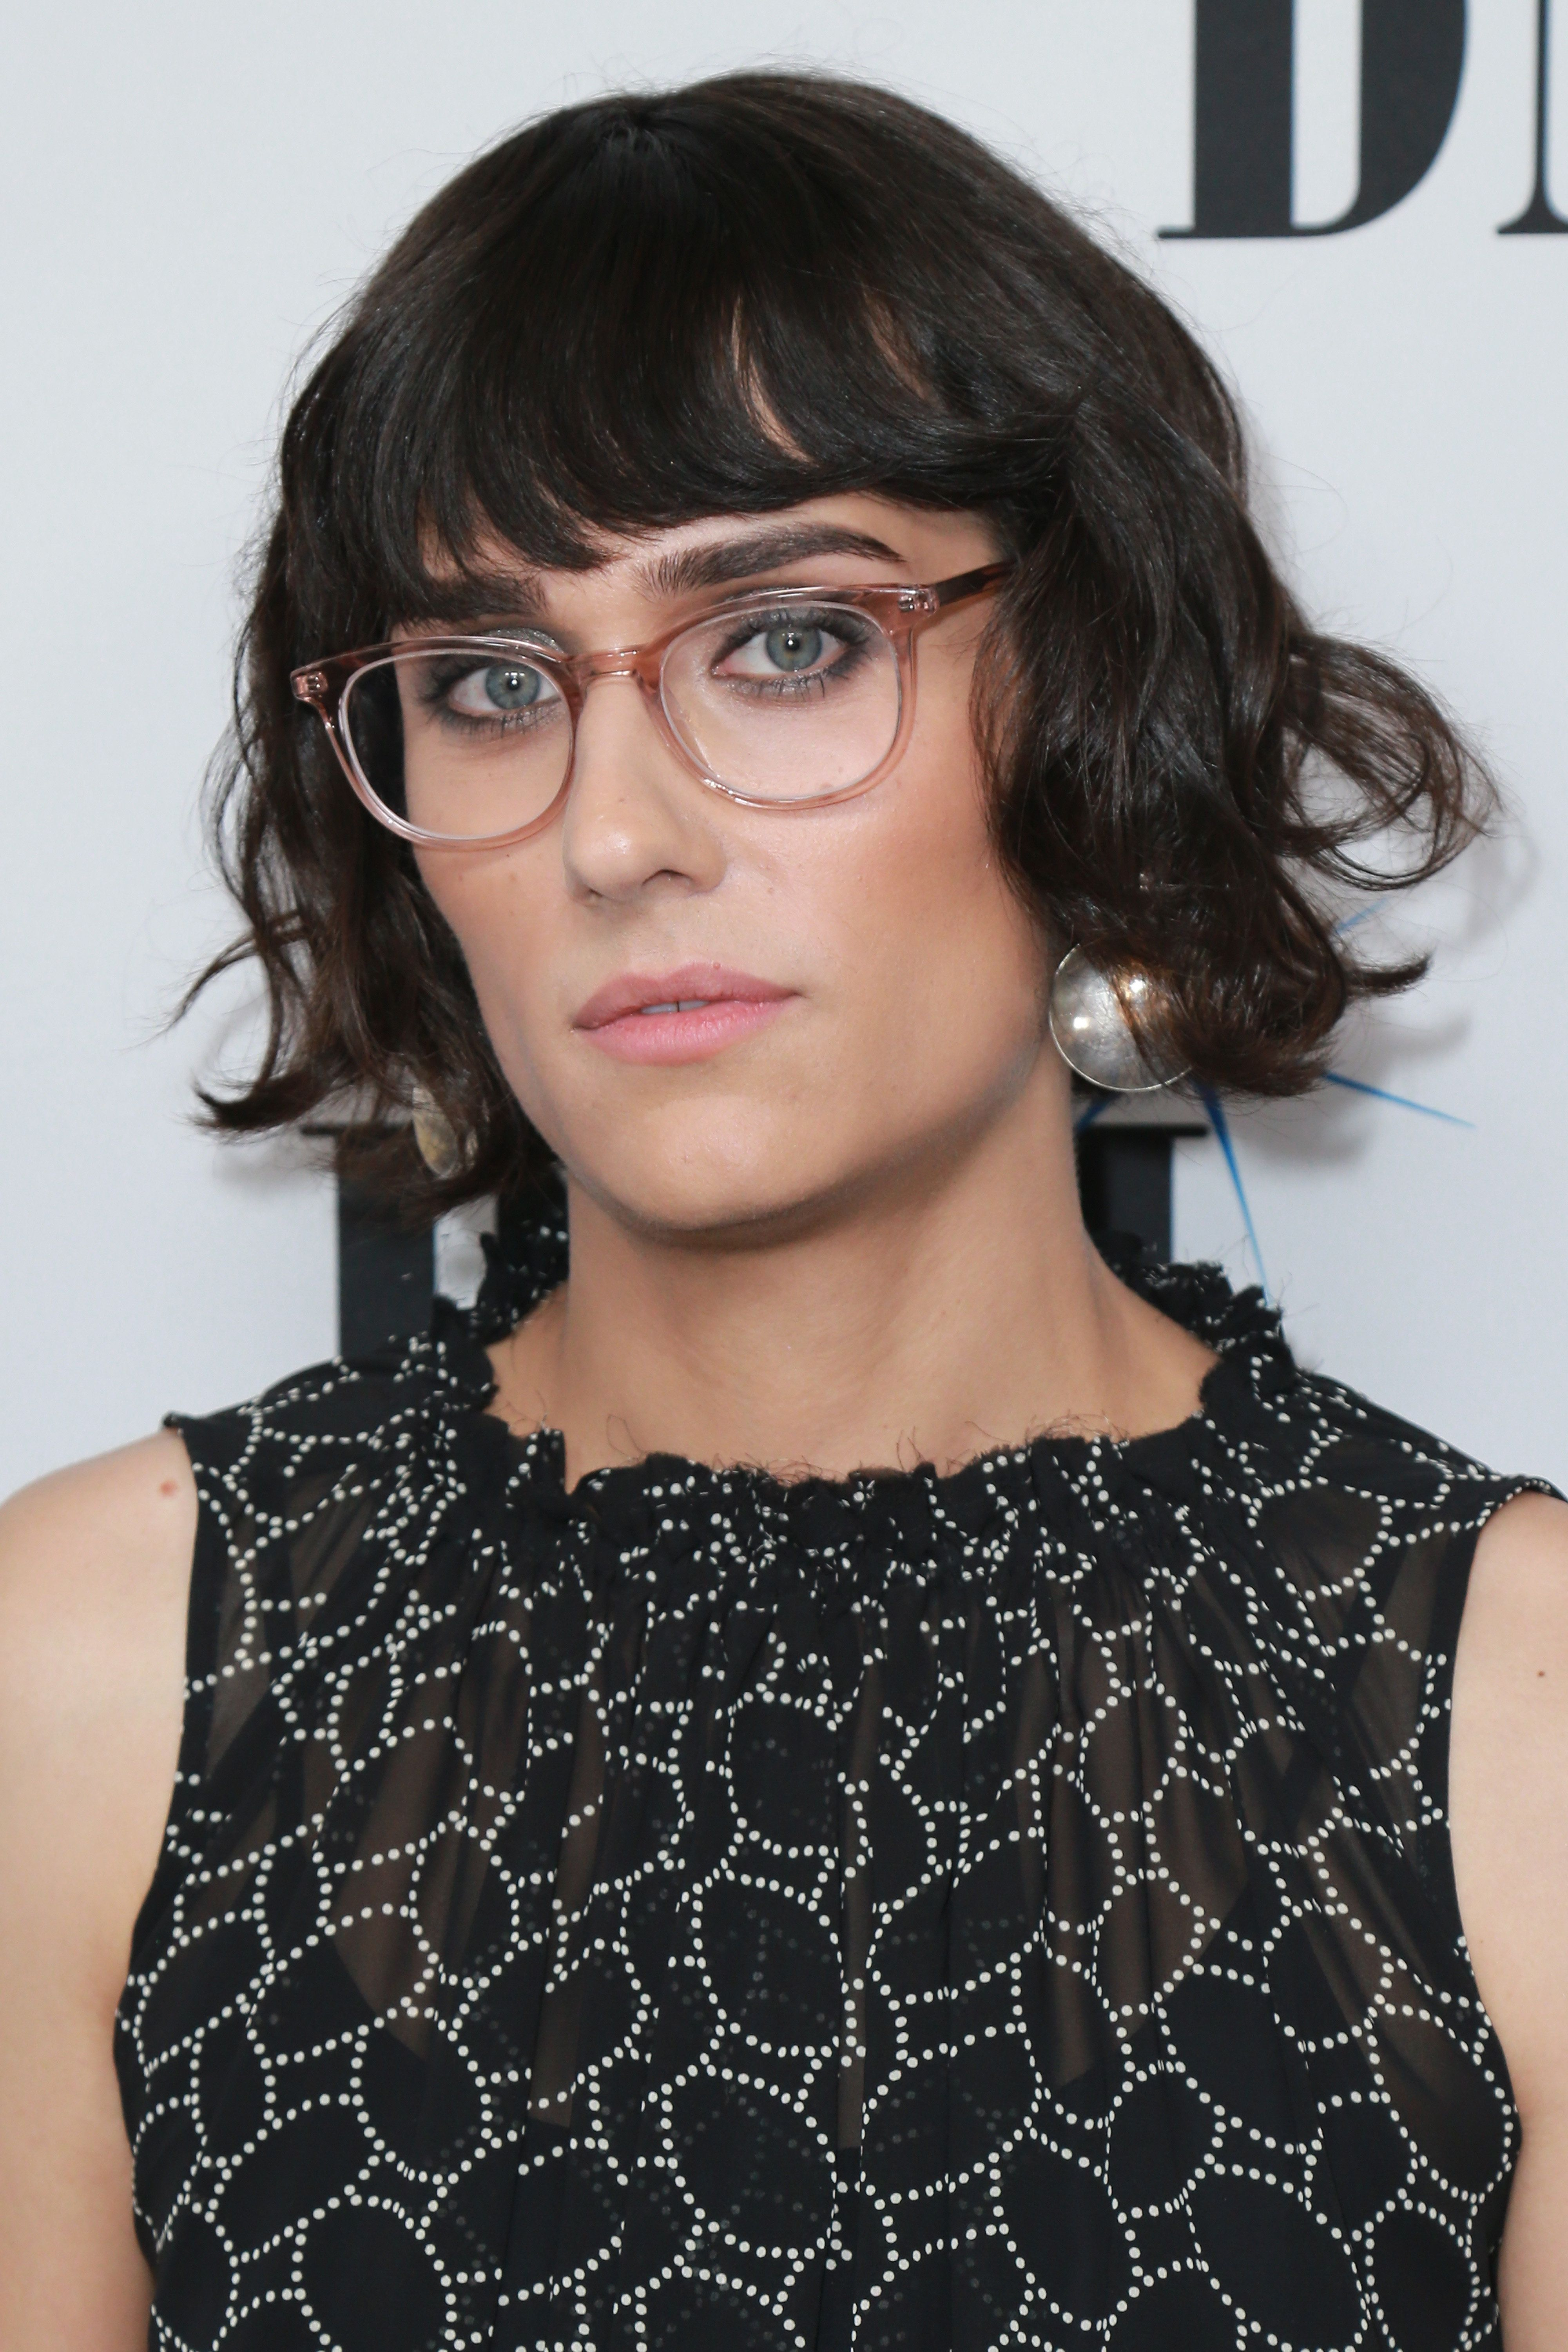 BEVERLY HILLS, CA - MAY 08:  Actor Teddy Geiger attends the 66th Annual BMI Pop Awards - Arrivals at the Beverly Wilshire Four Seasons Hotel on May 8, 2018 in Beverly Hills, California.  (Photo by Leon Bennett/Getty Images)